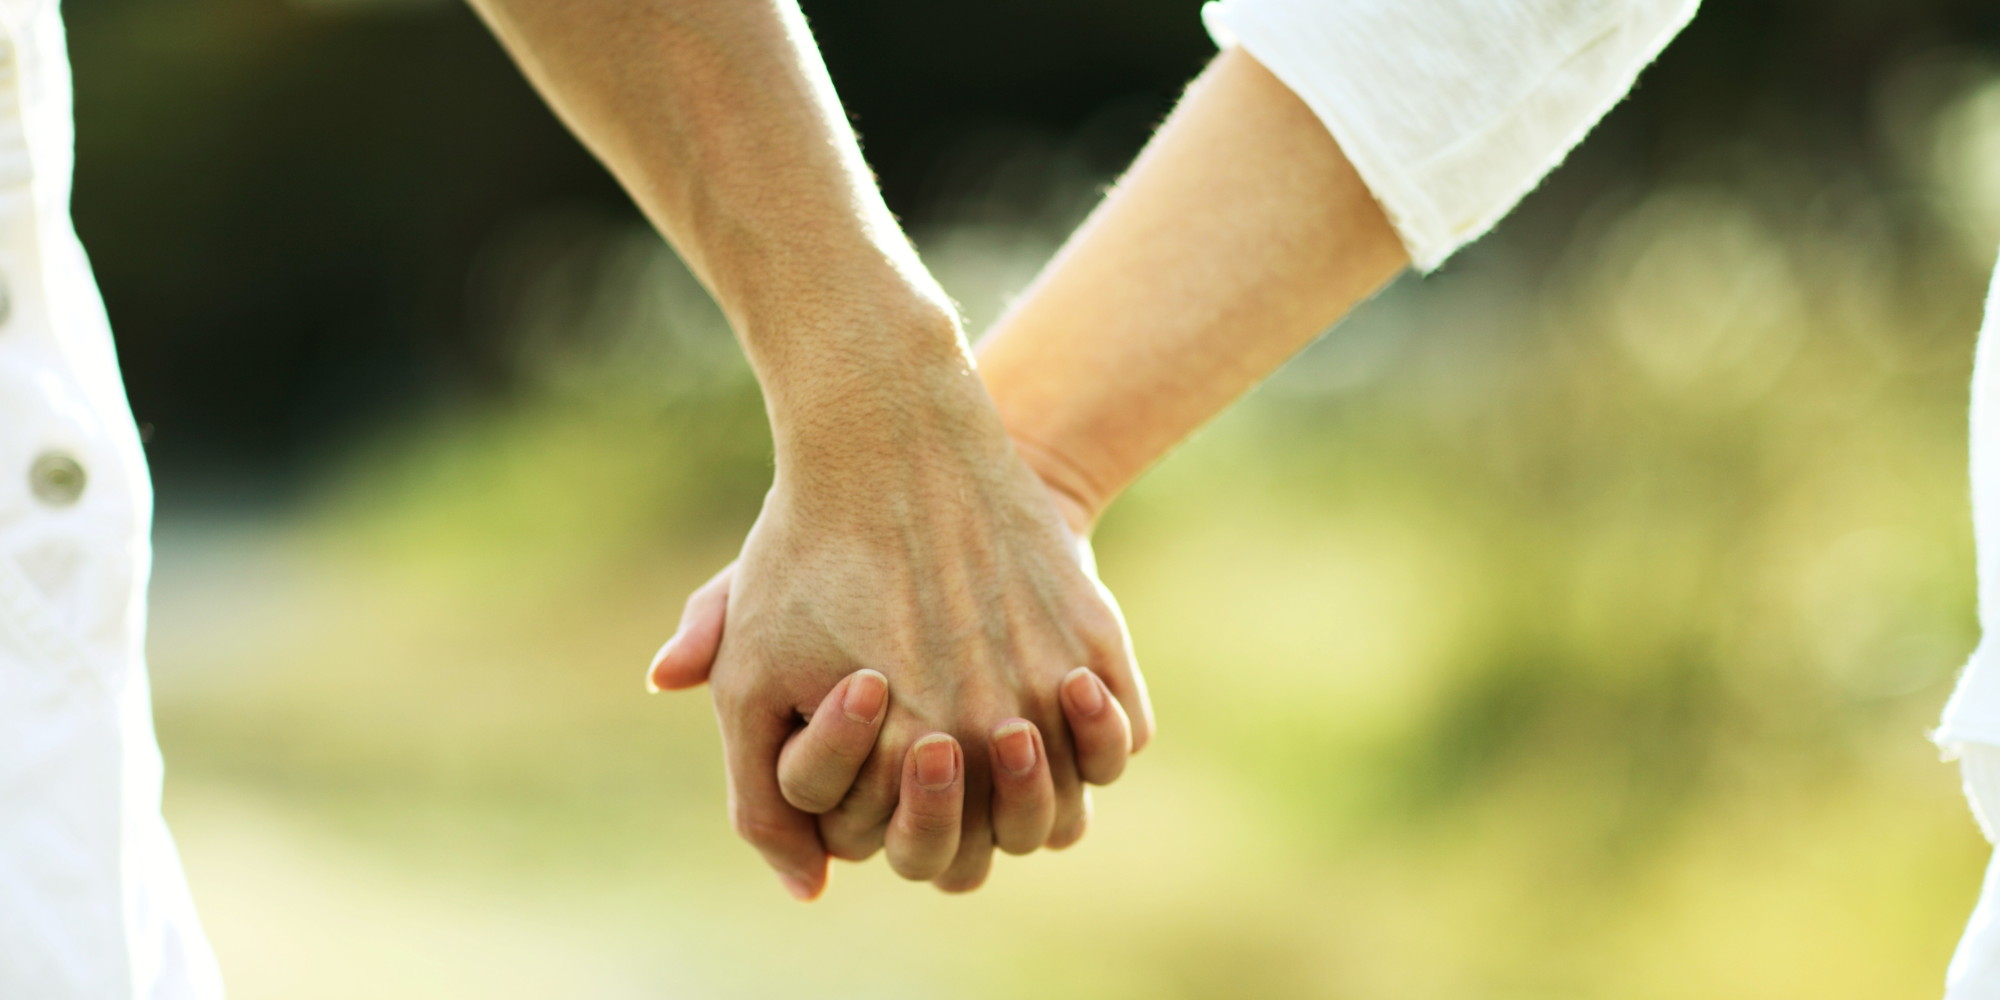 Two People Holding Hands In Black And White O-holding-hands-facebook ...